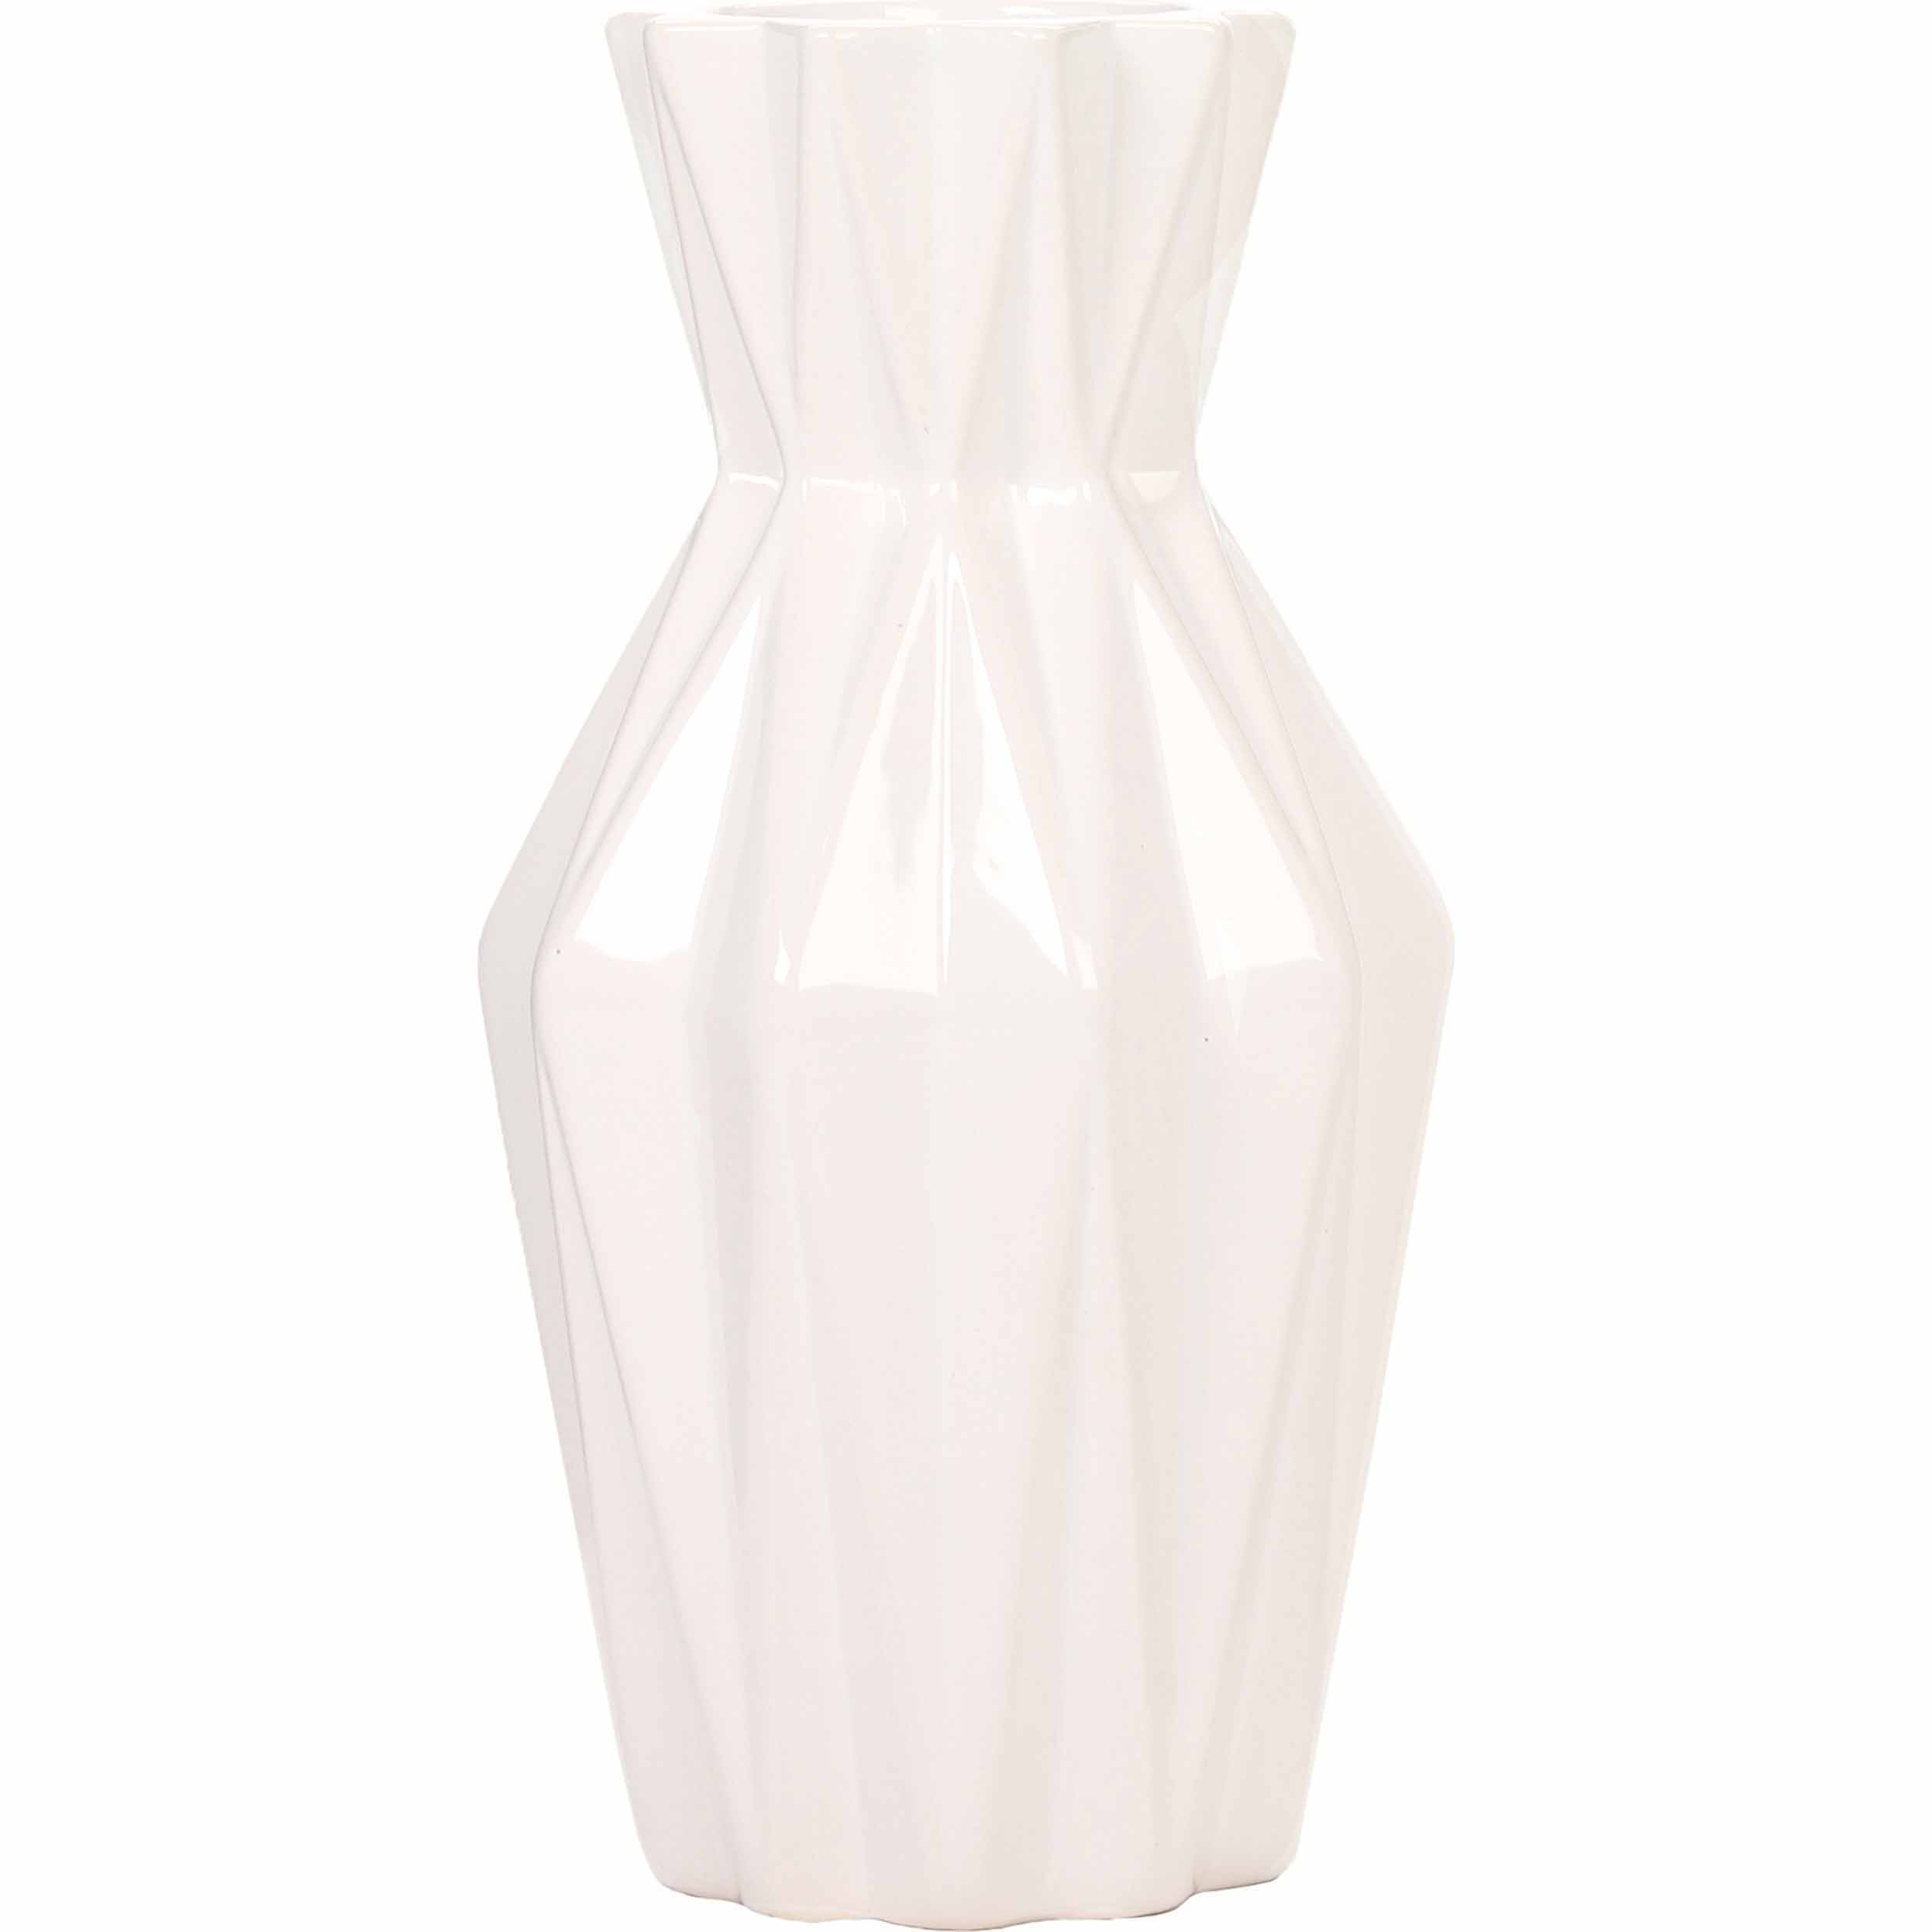 Mainstays Geometric Ceramic Vase, White by HG Global, LLC